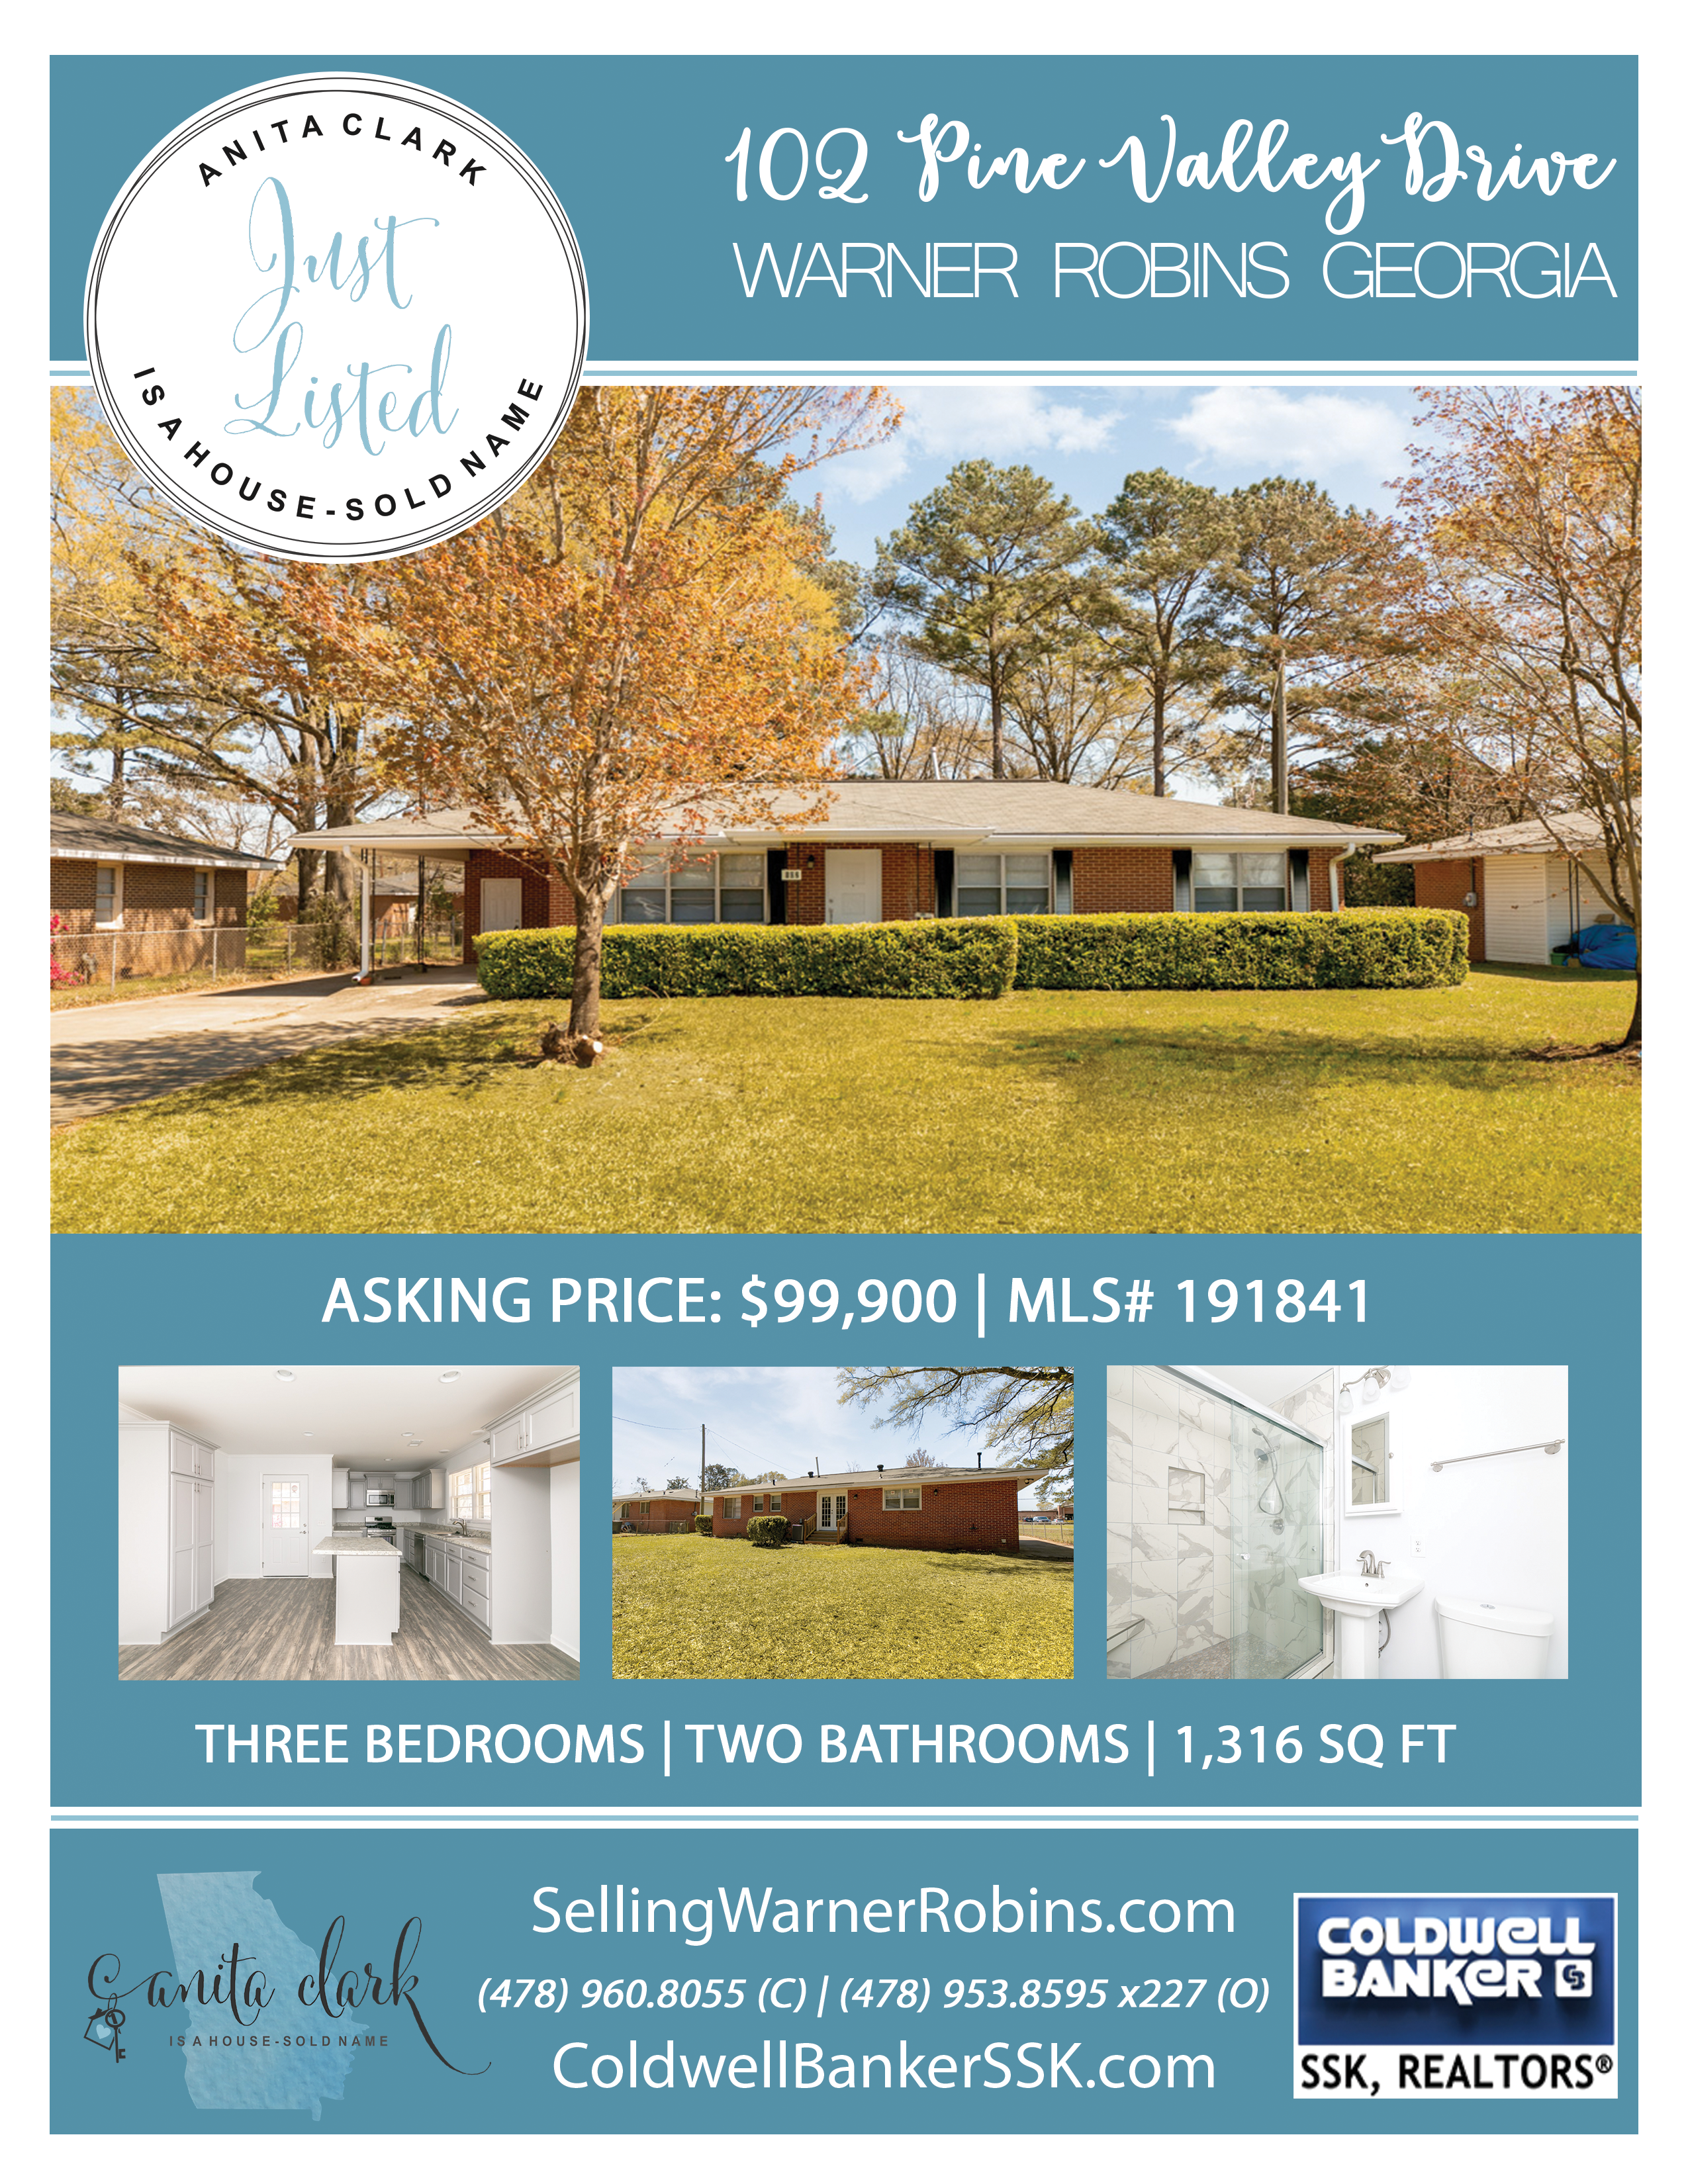 Just Listed in the Miller Hills Estate Subdivision